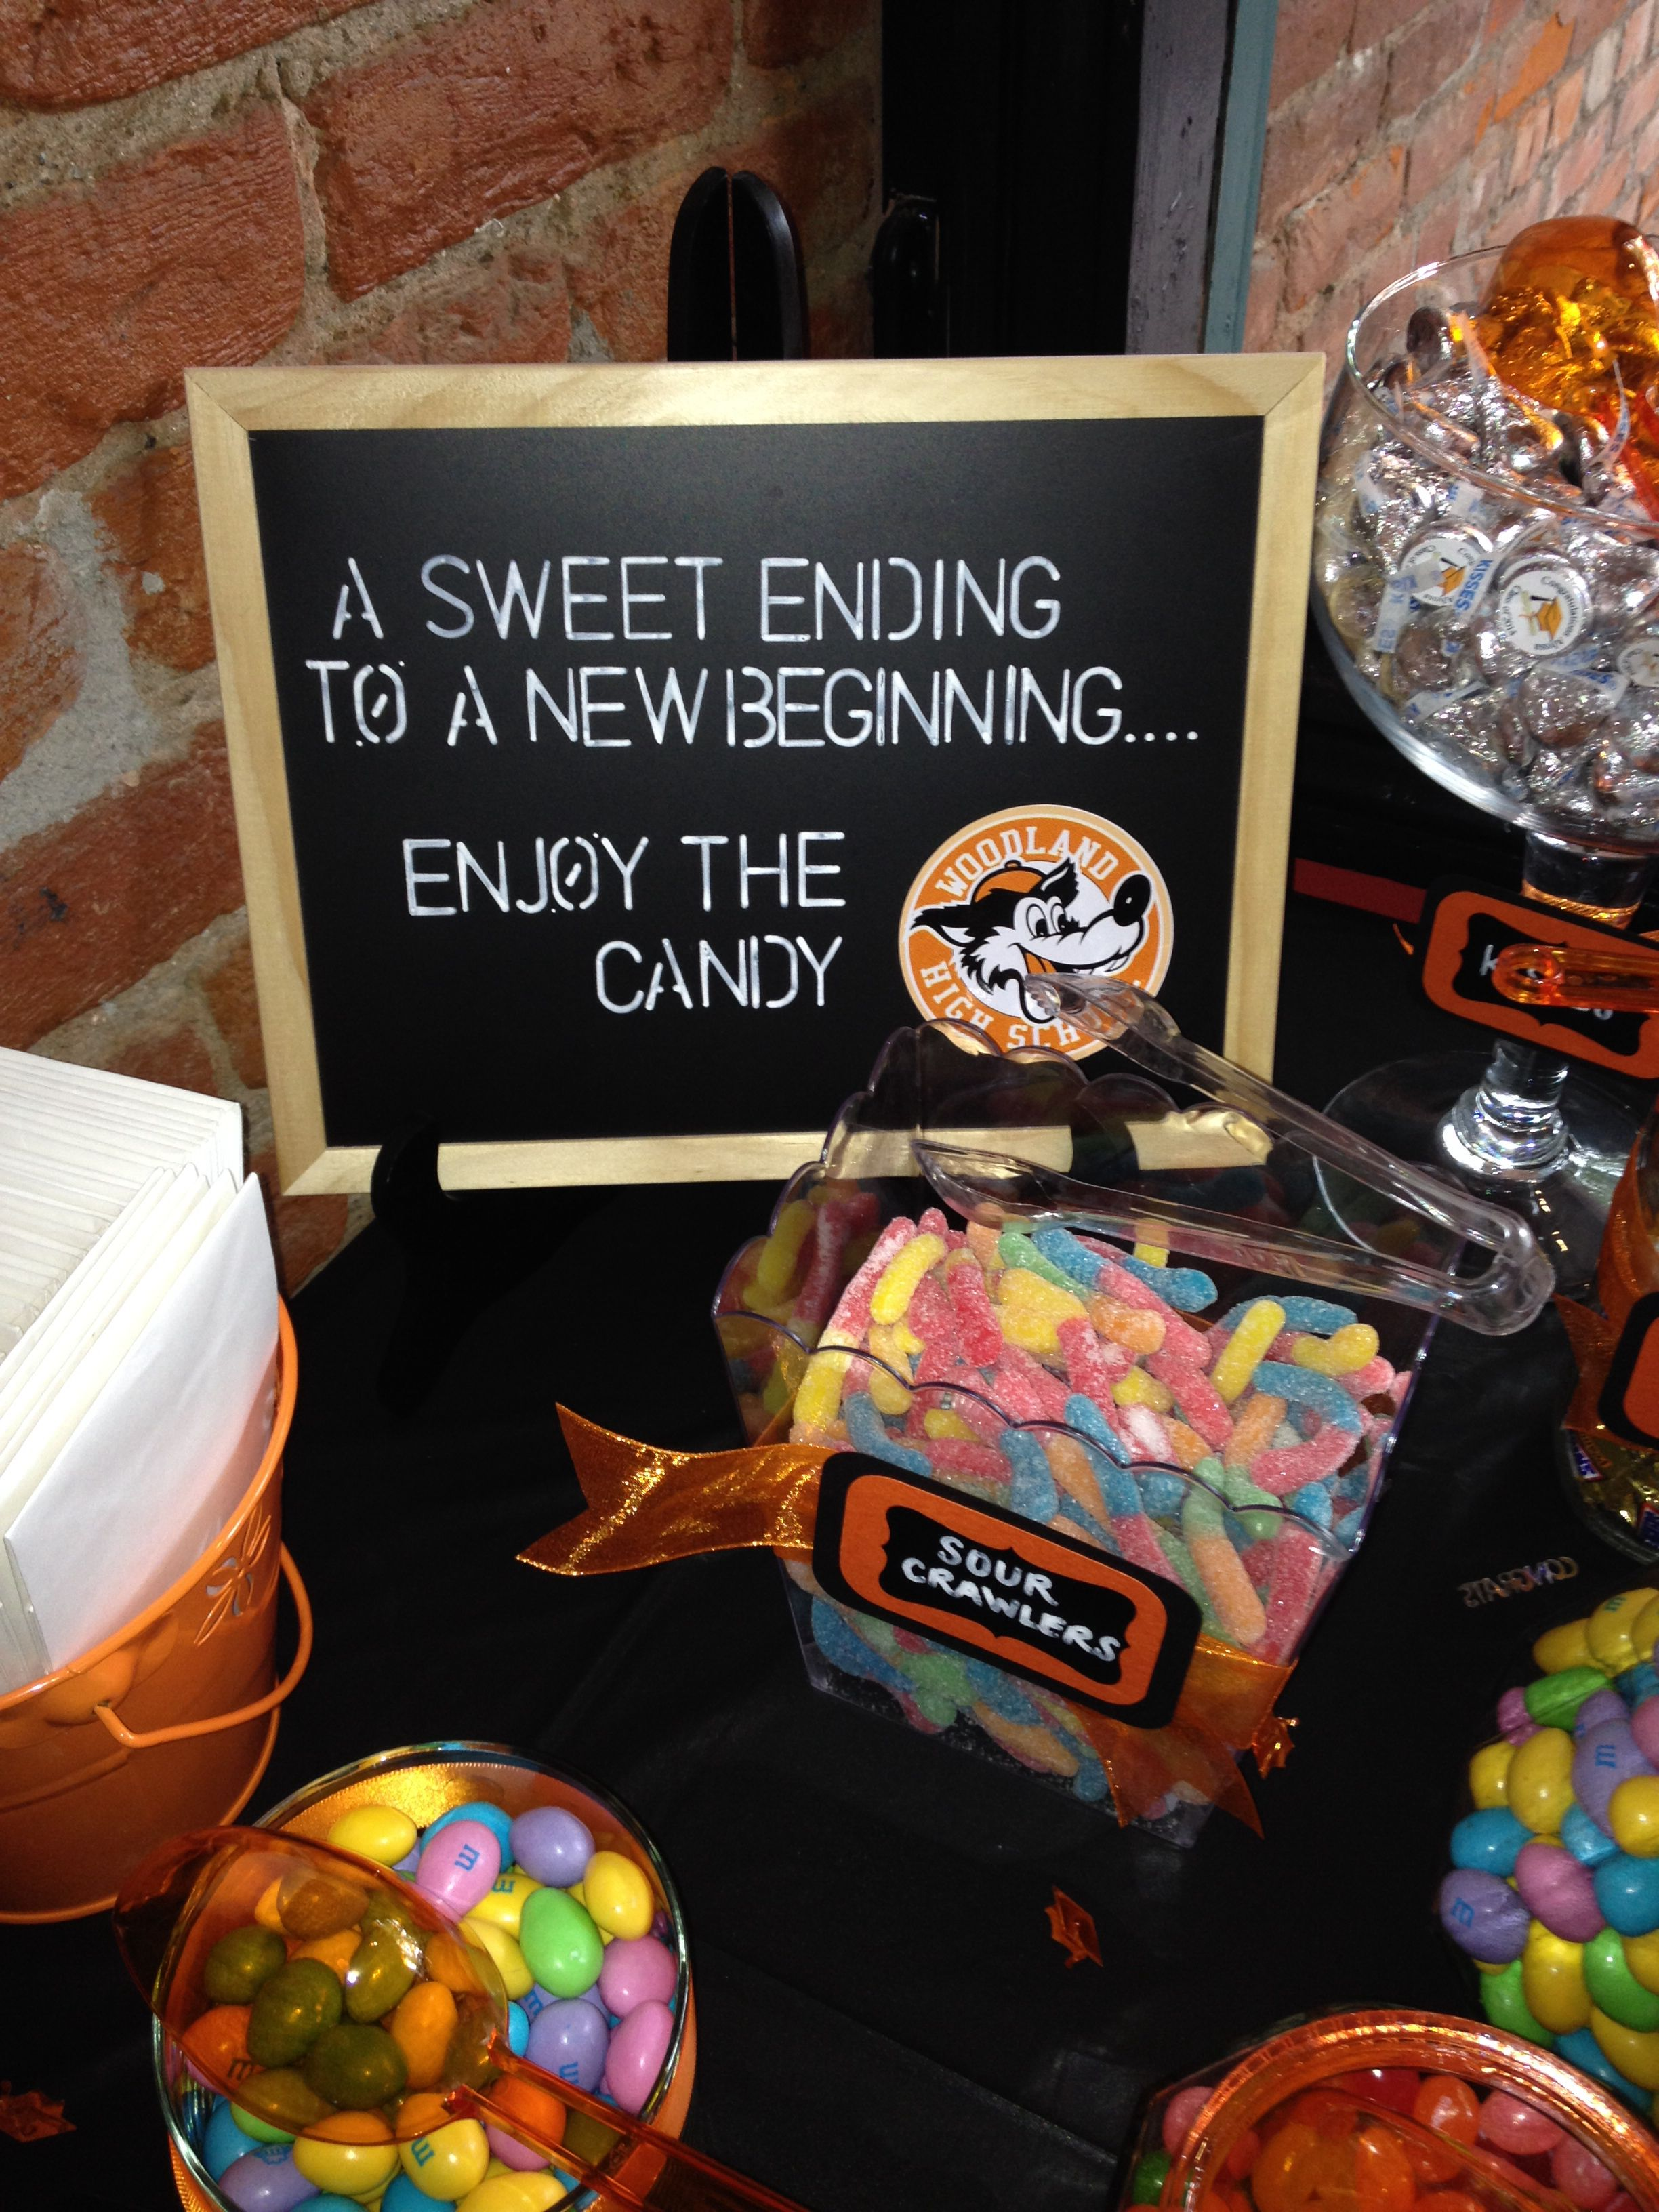 graduation party ideas. candy bar sign. graduation decorations